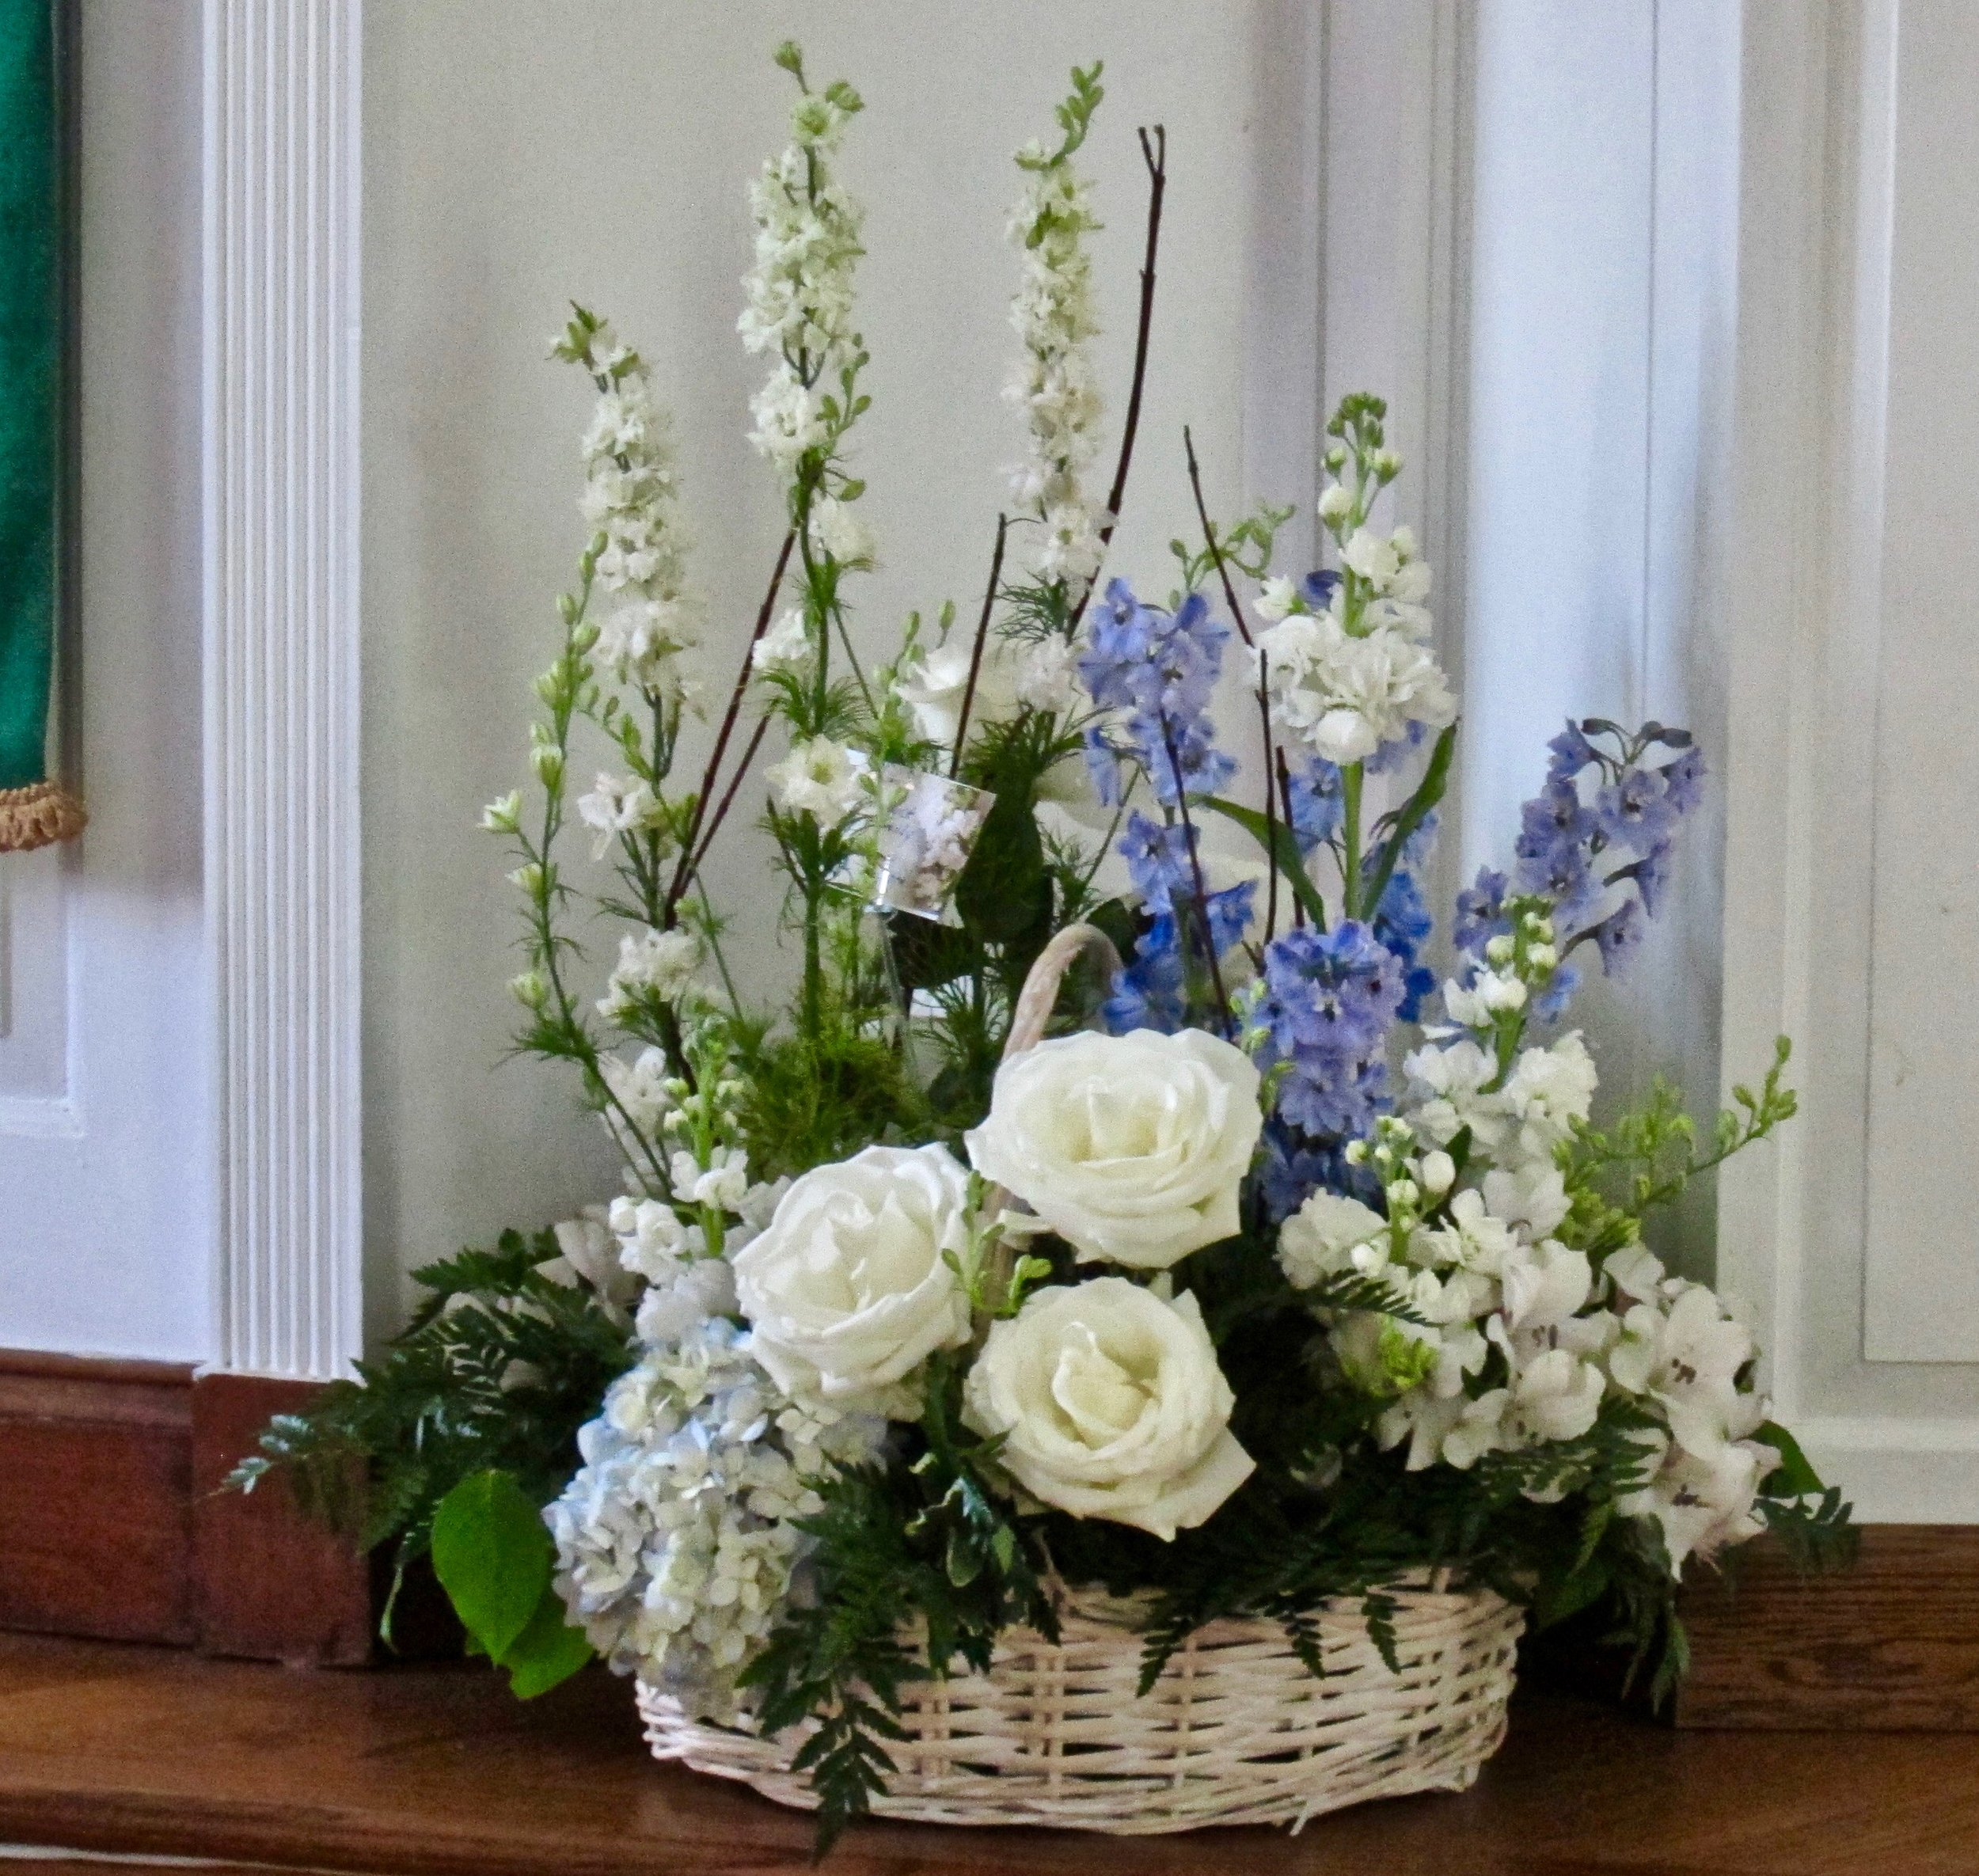 GARDEN SERENITY White larkspur, roses, alstroemeria with blue delphinium and hydrangeas, large $95 to extra large for floor display, $150.